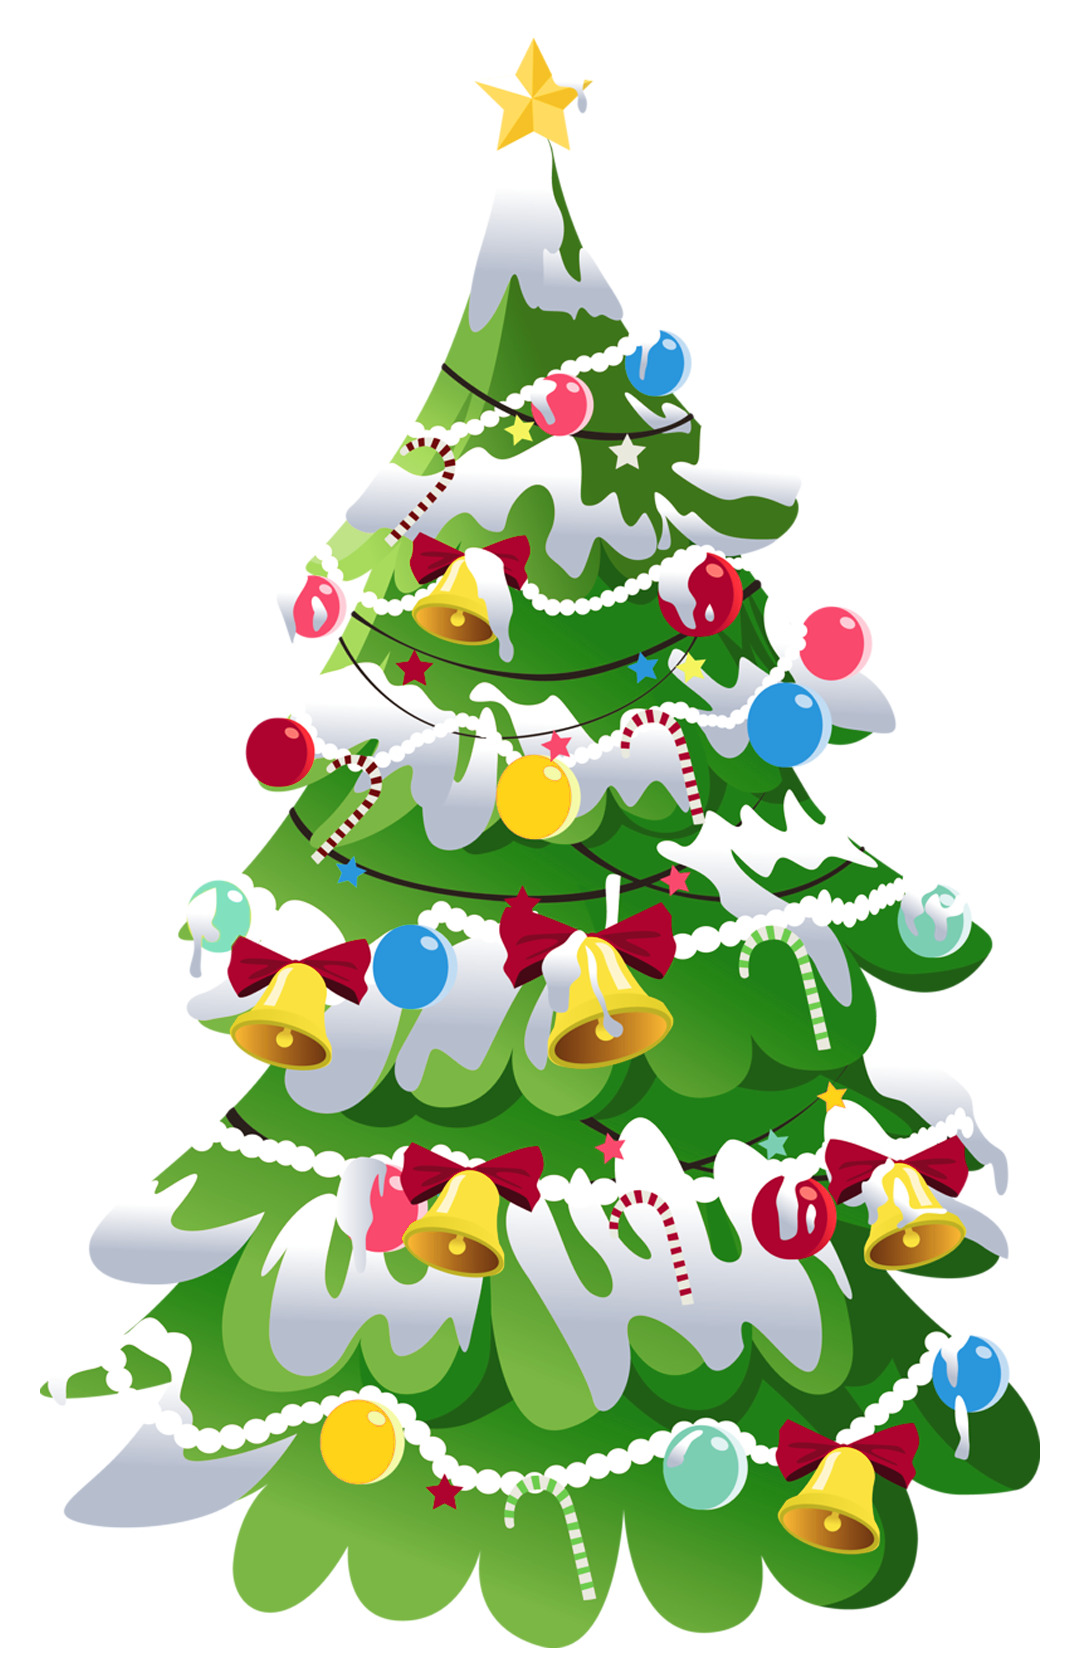 Christmas tree banner clipart picture transparent download Transparent Christmas Tree PNG Picture | Gallery Yopriceville ... picture transparent download